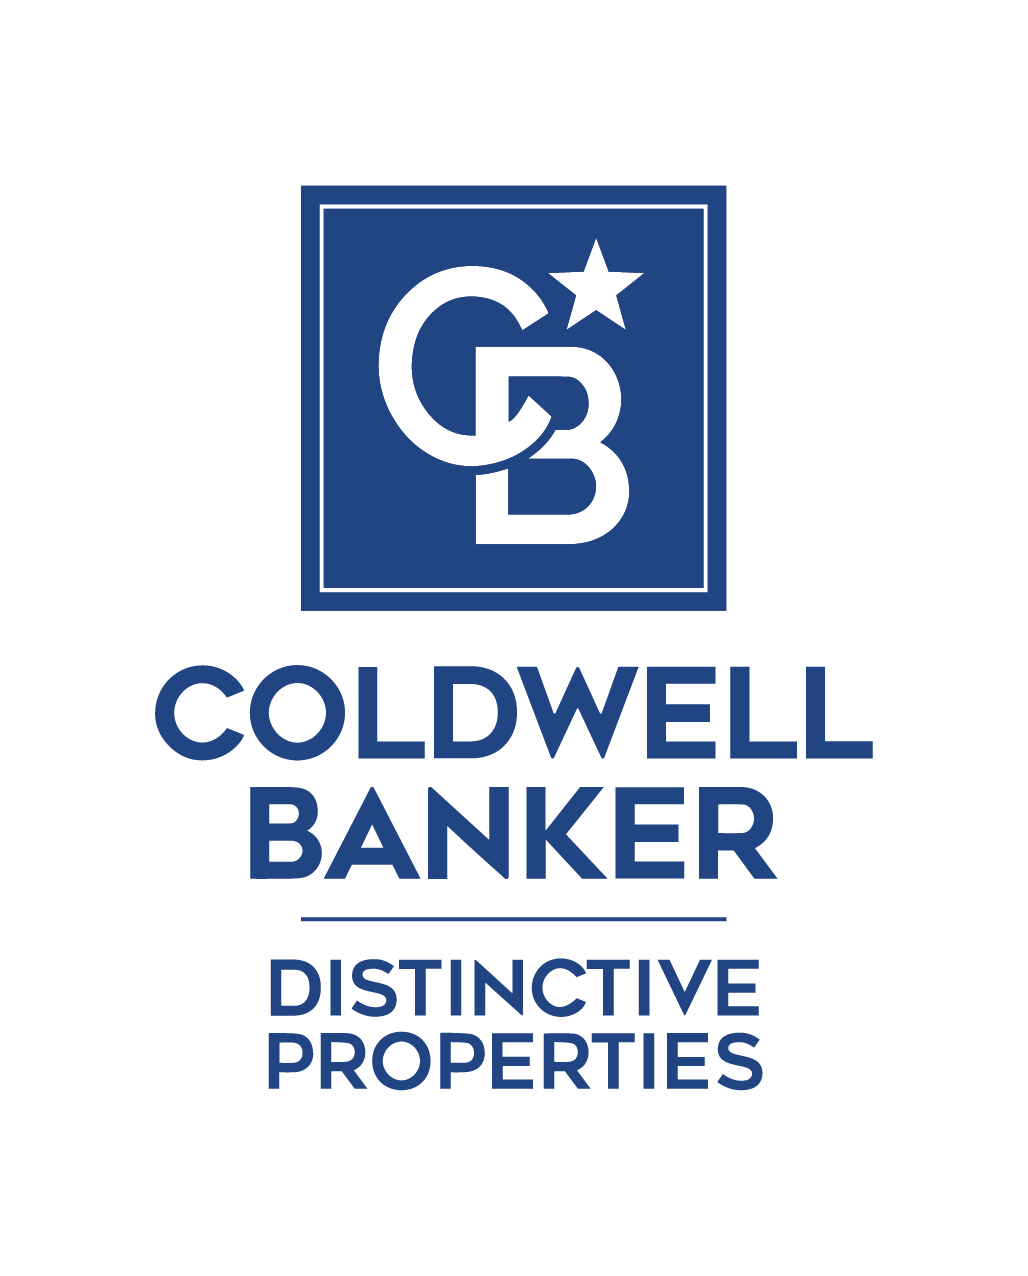 Jacklyn Fries - Coldwell Banker Distinctive Properties